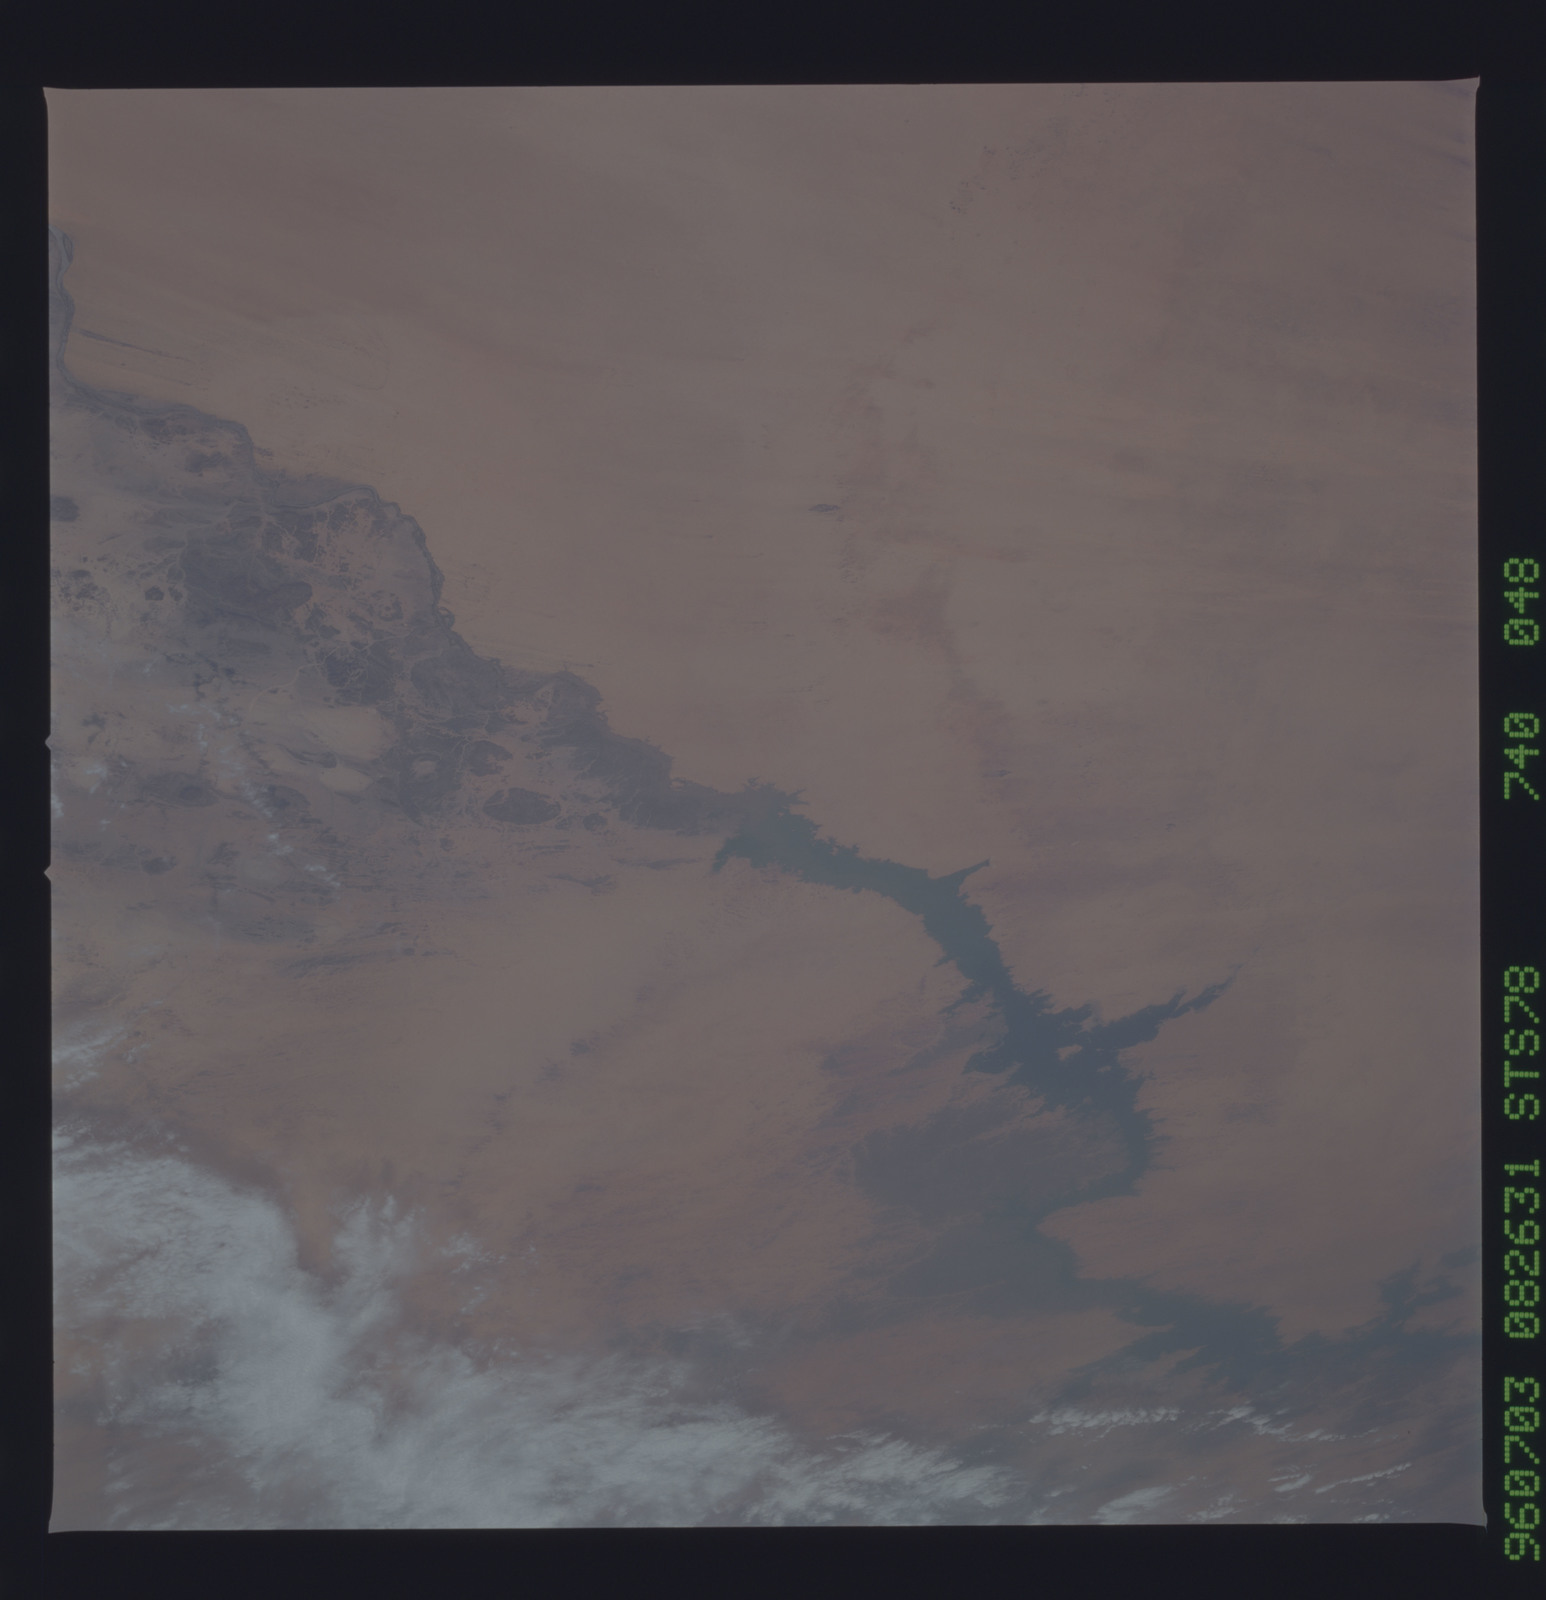 STS078-740-048 - STS-078 - Earth observations taken from Space Shuttle Columbia during STS-78 mission